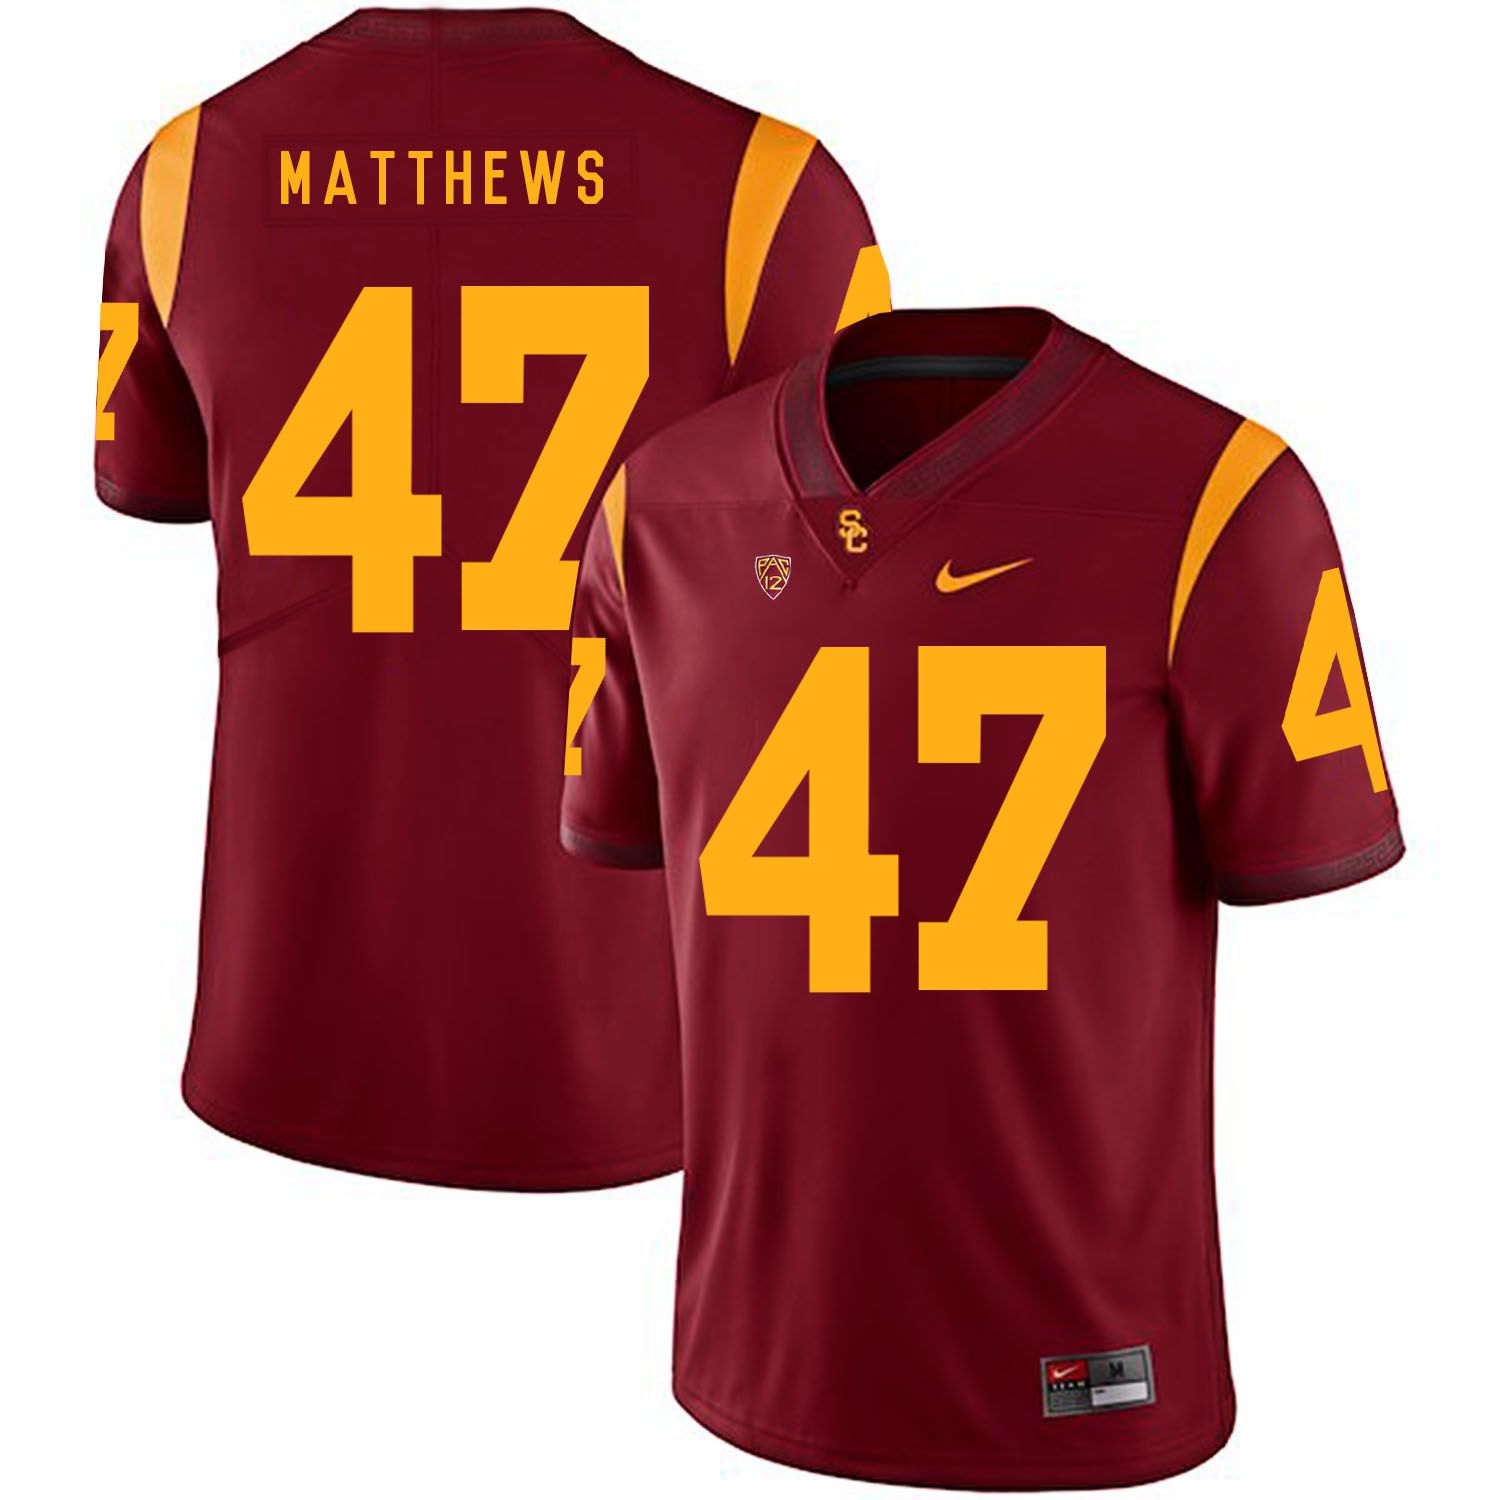 Men USC Trojans 47 Matthews Red Customized NCAA Jerseys